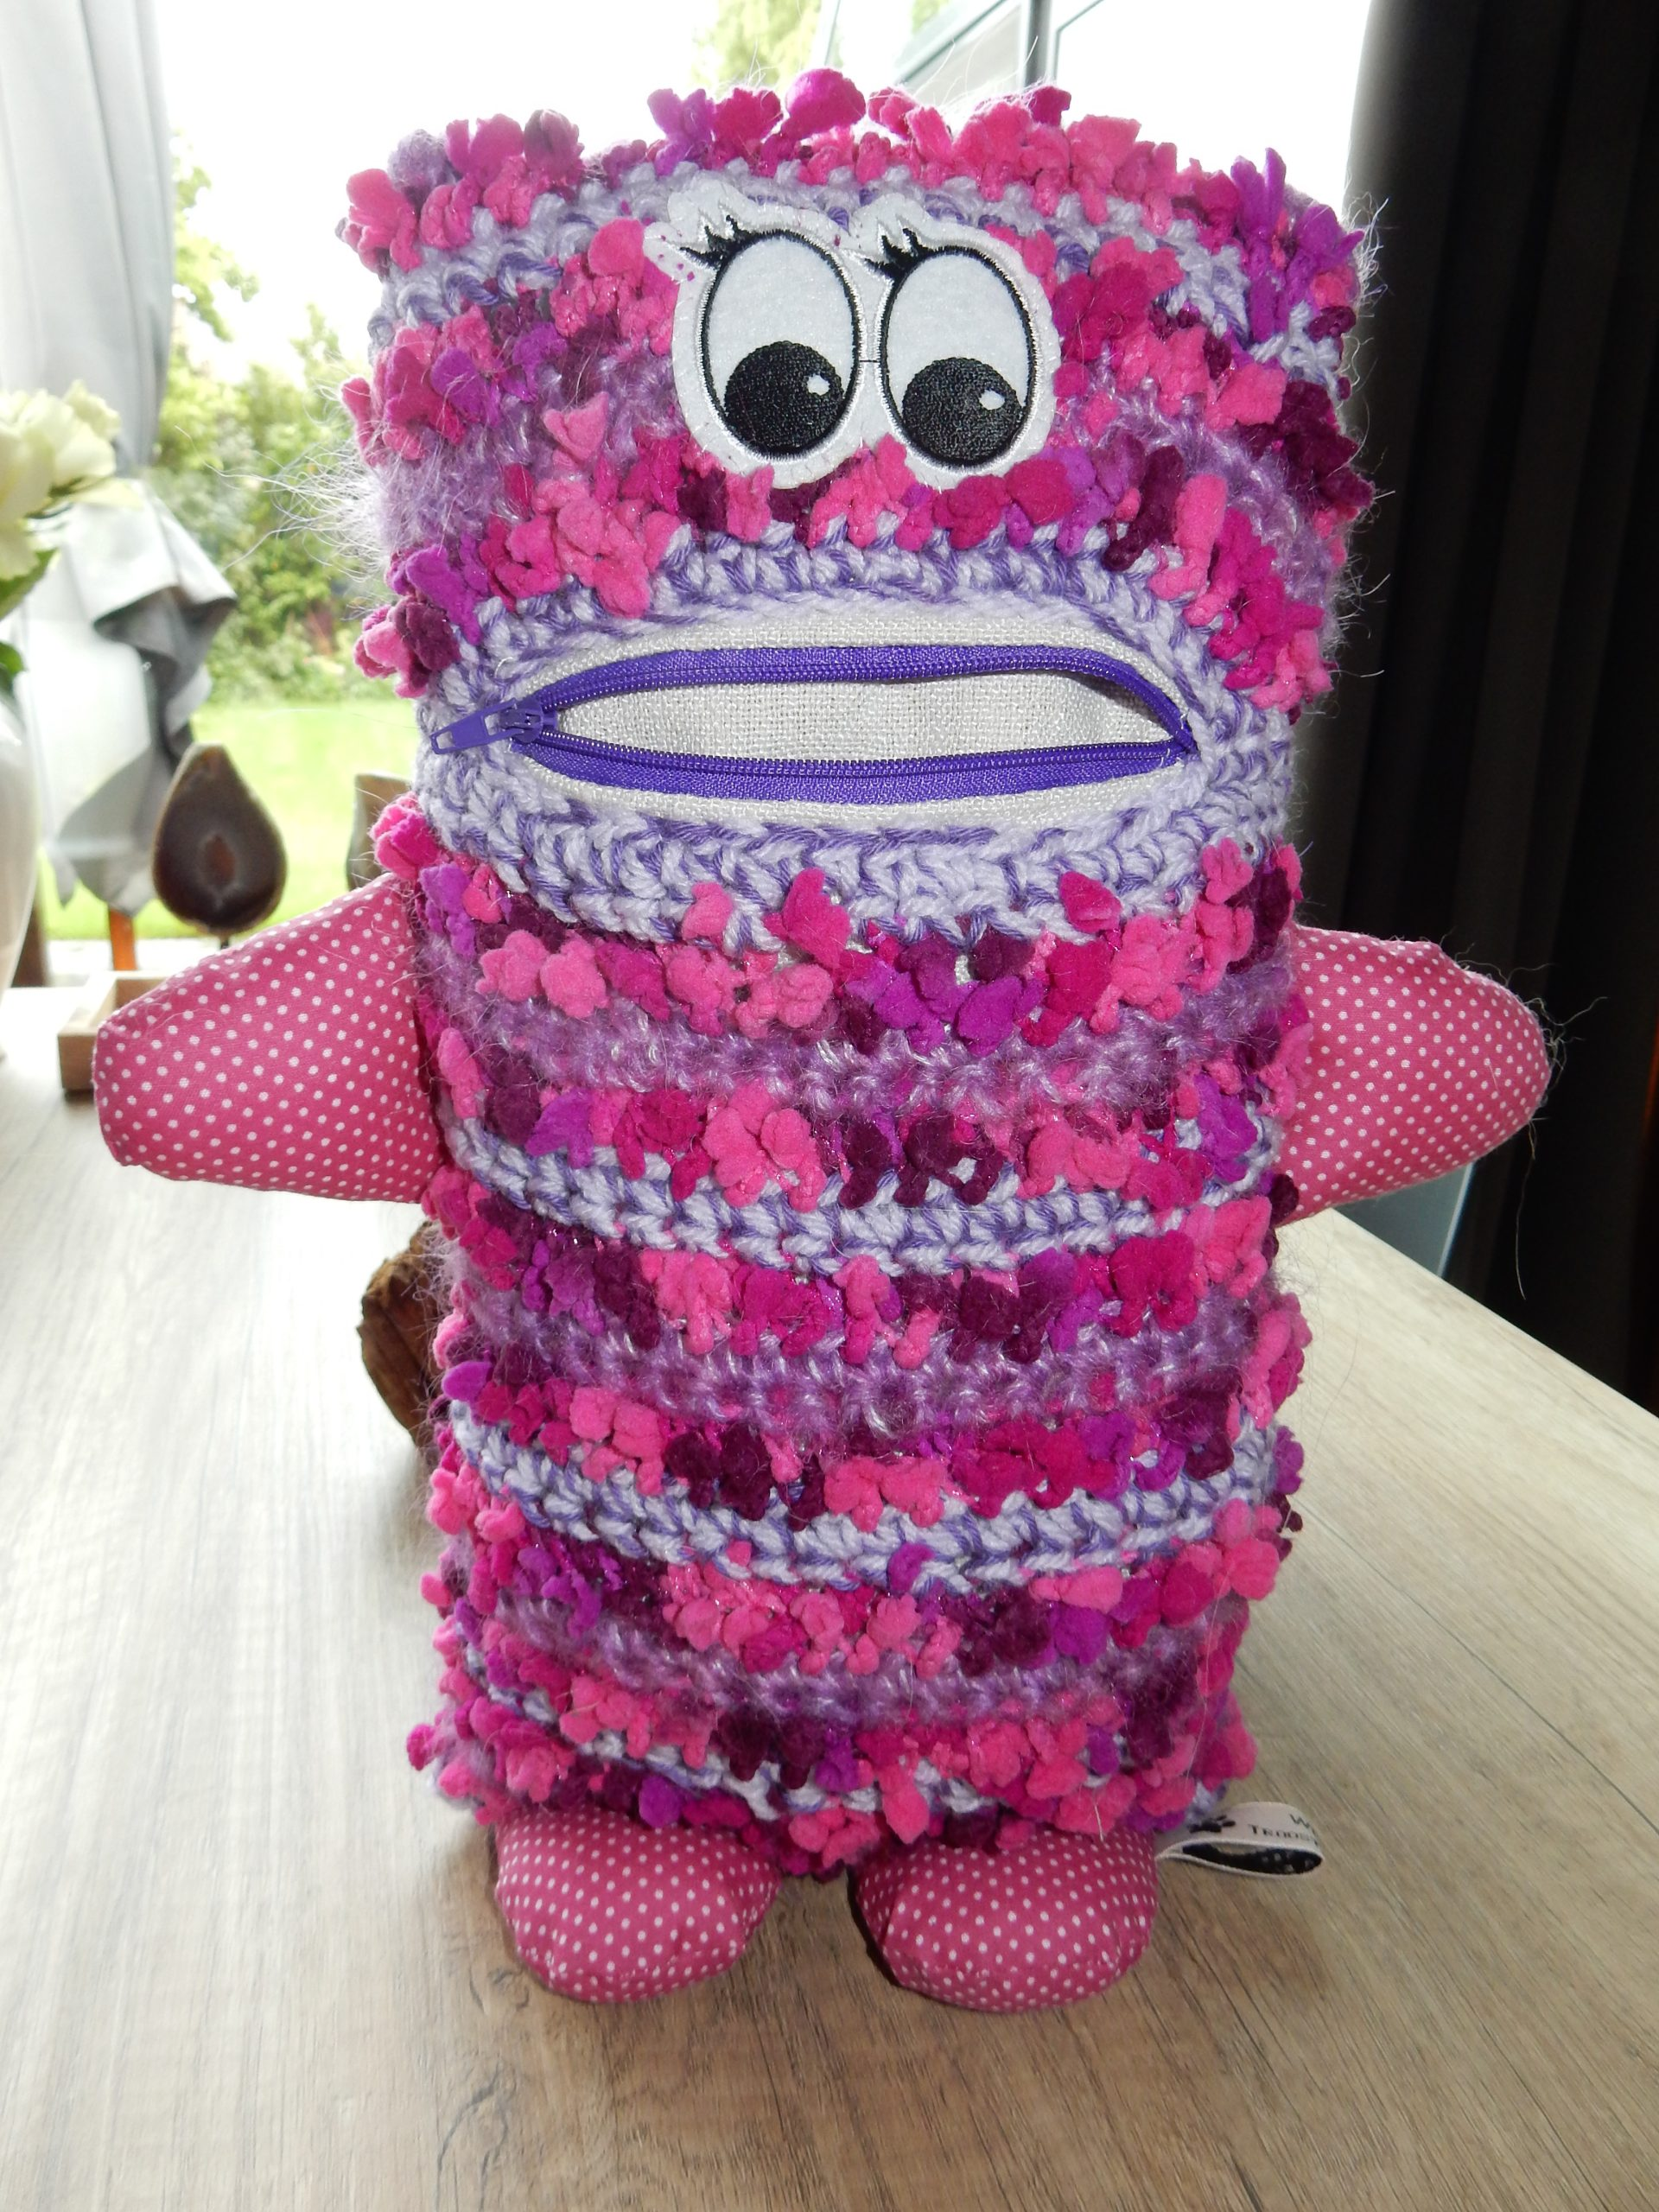 Happy pink - purple with dots